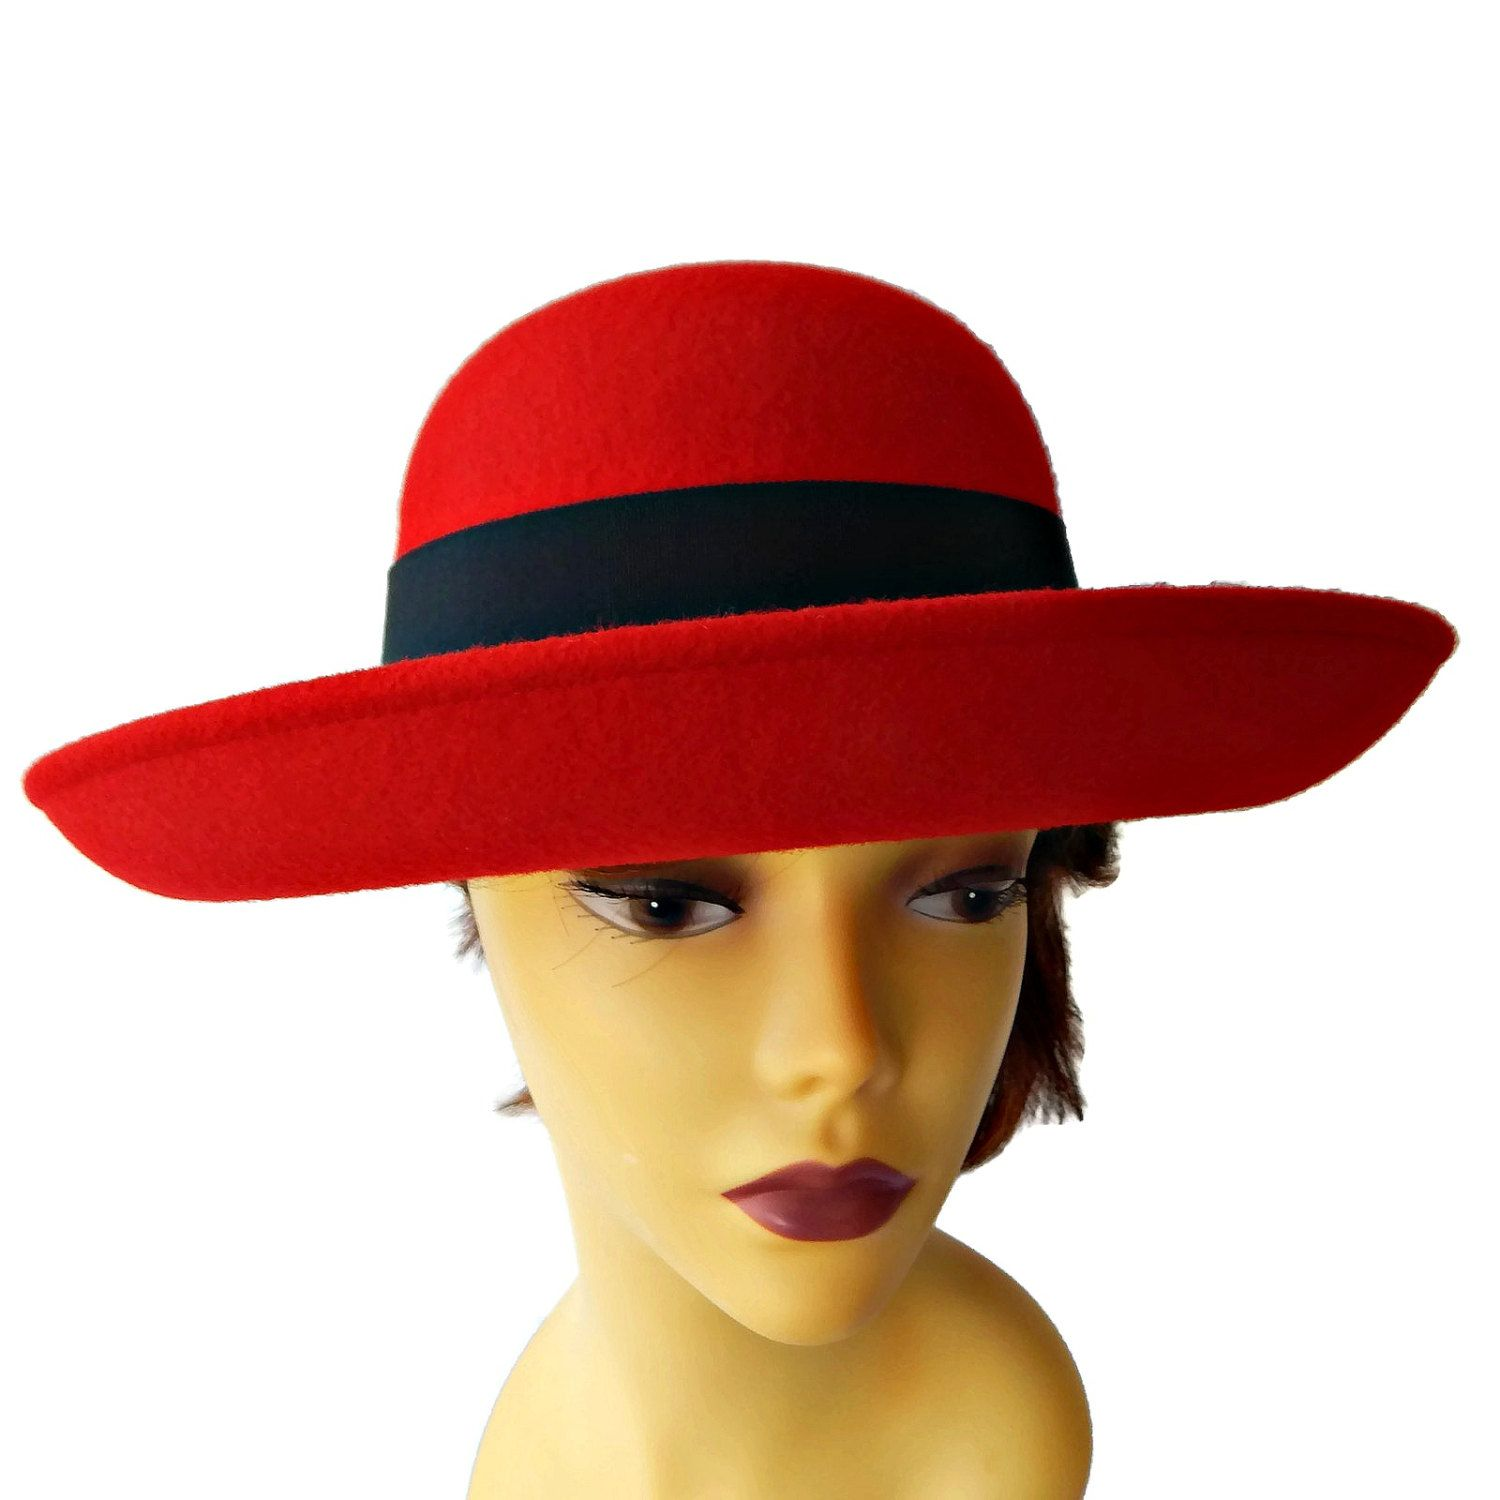 Red Wide Brim Hat with Black Ribbon and Bow Designer Geo Bollman